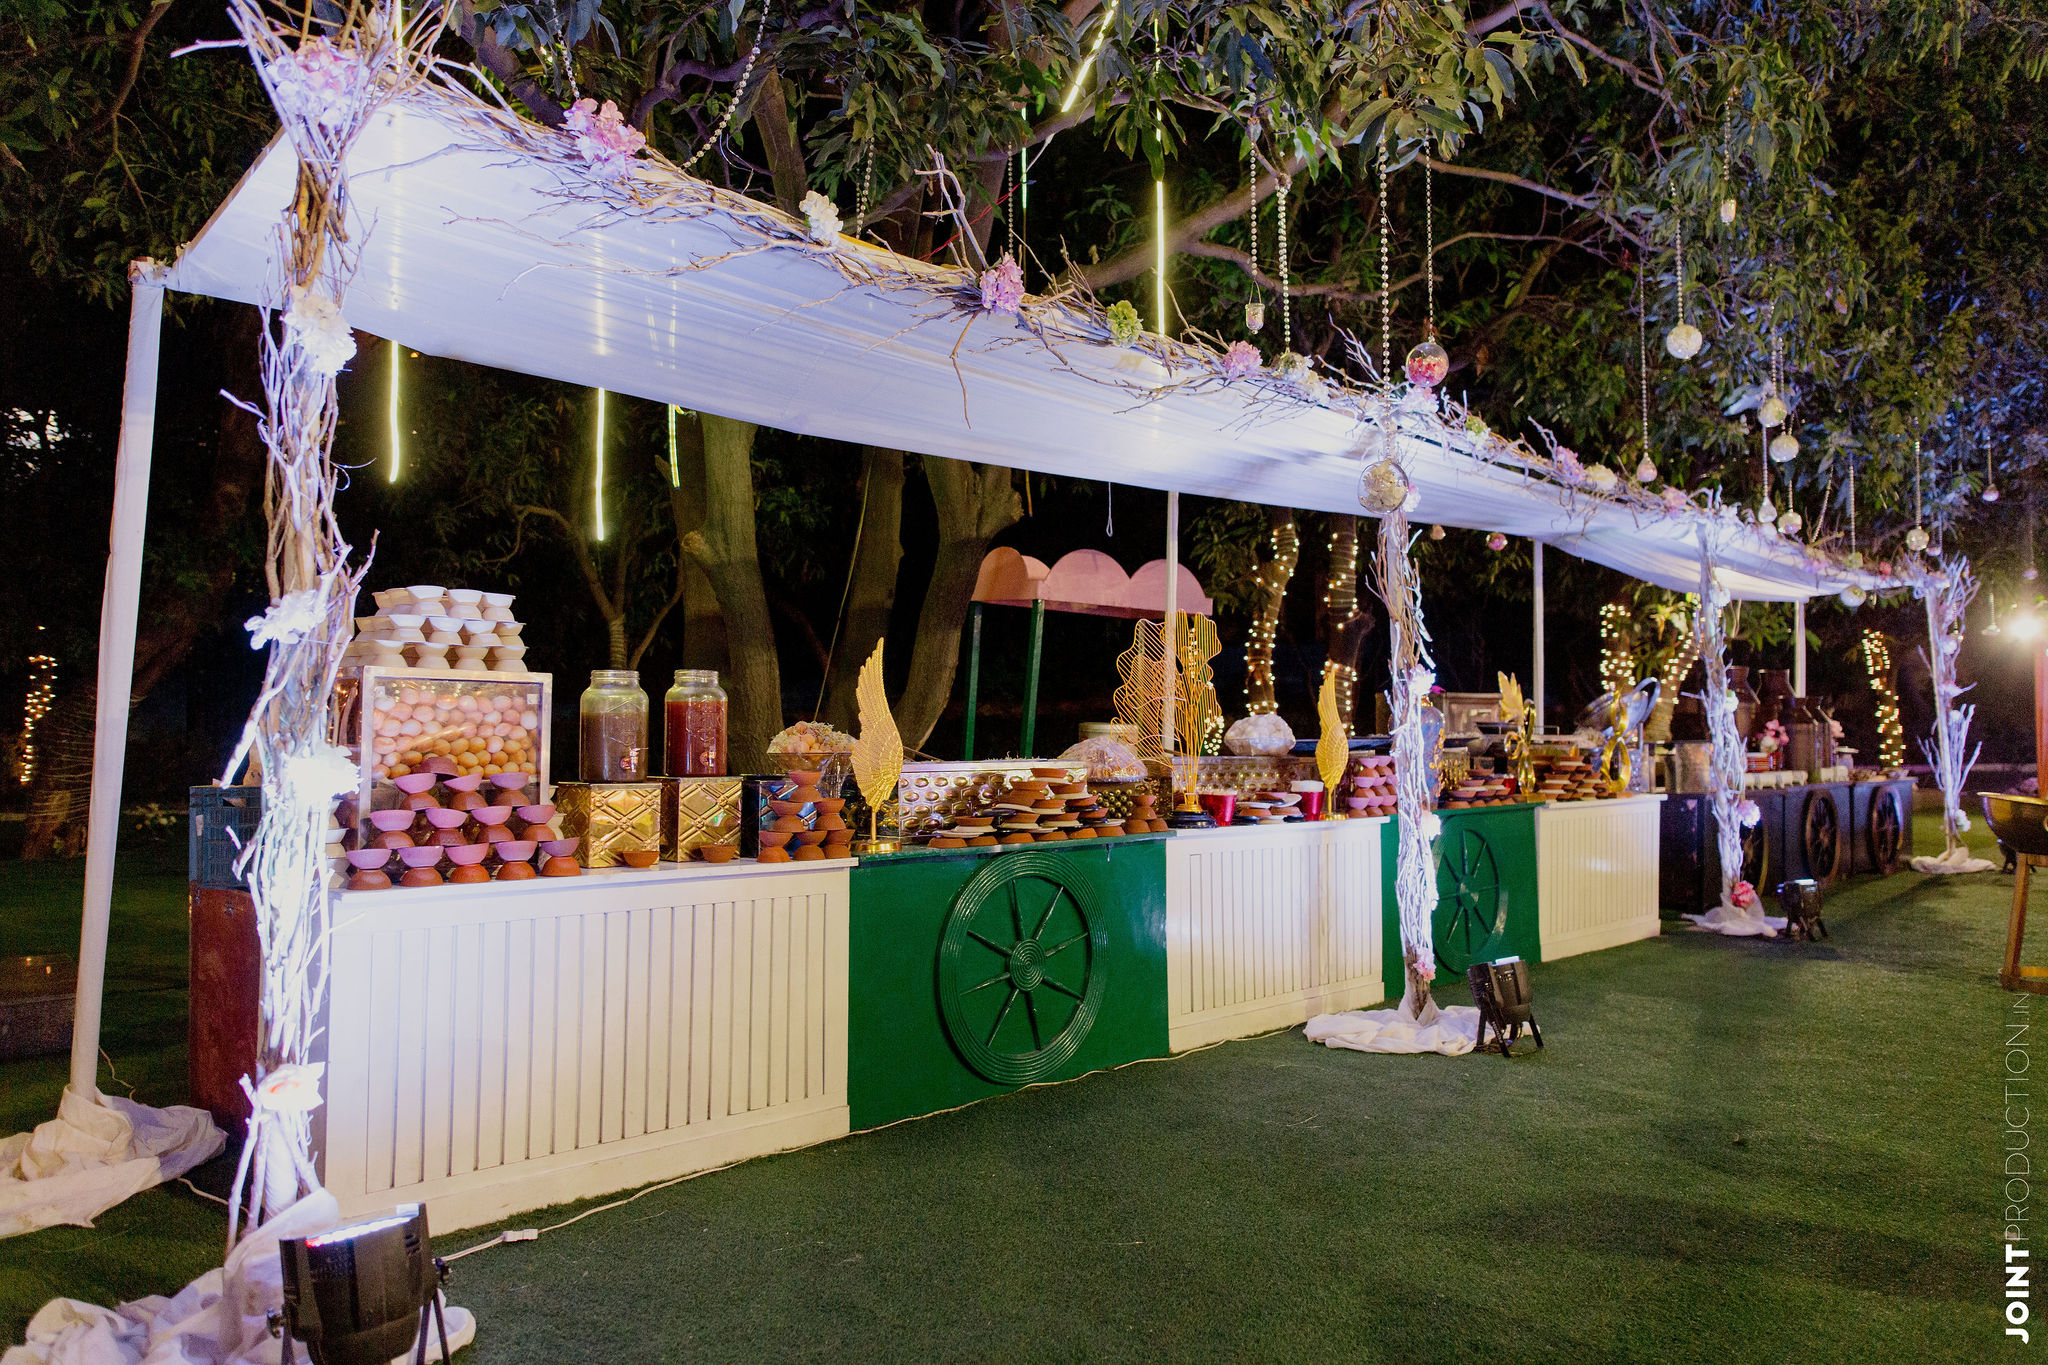 green and white food counter